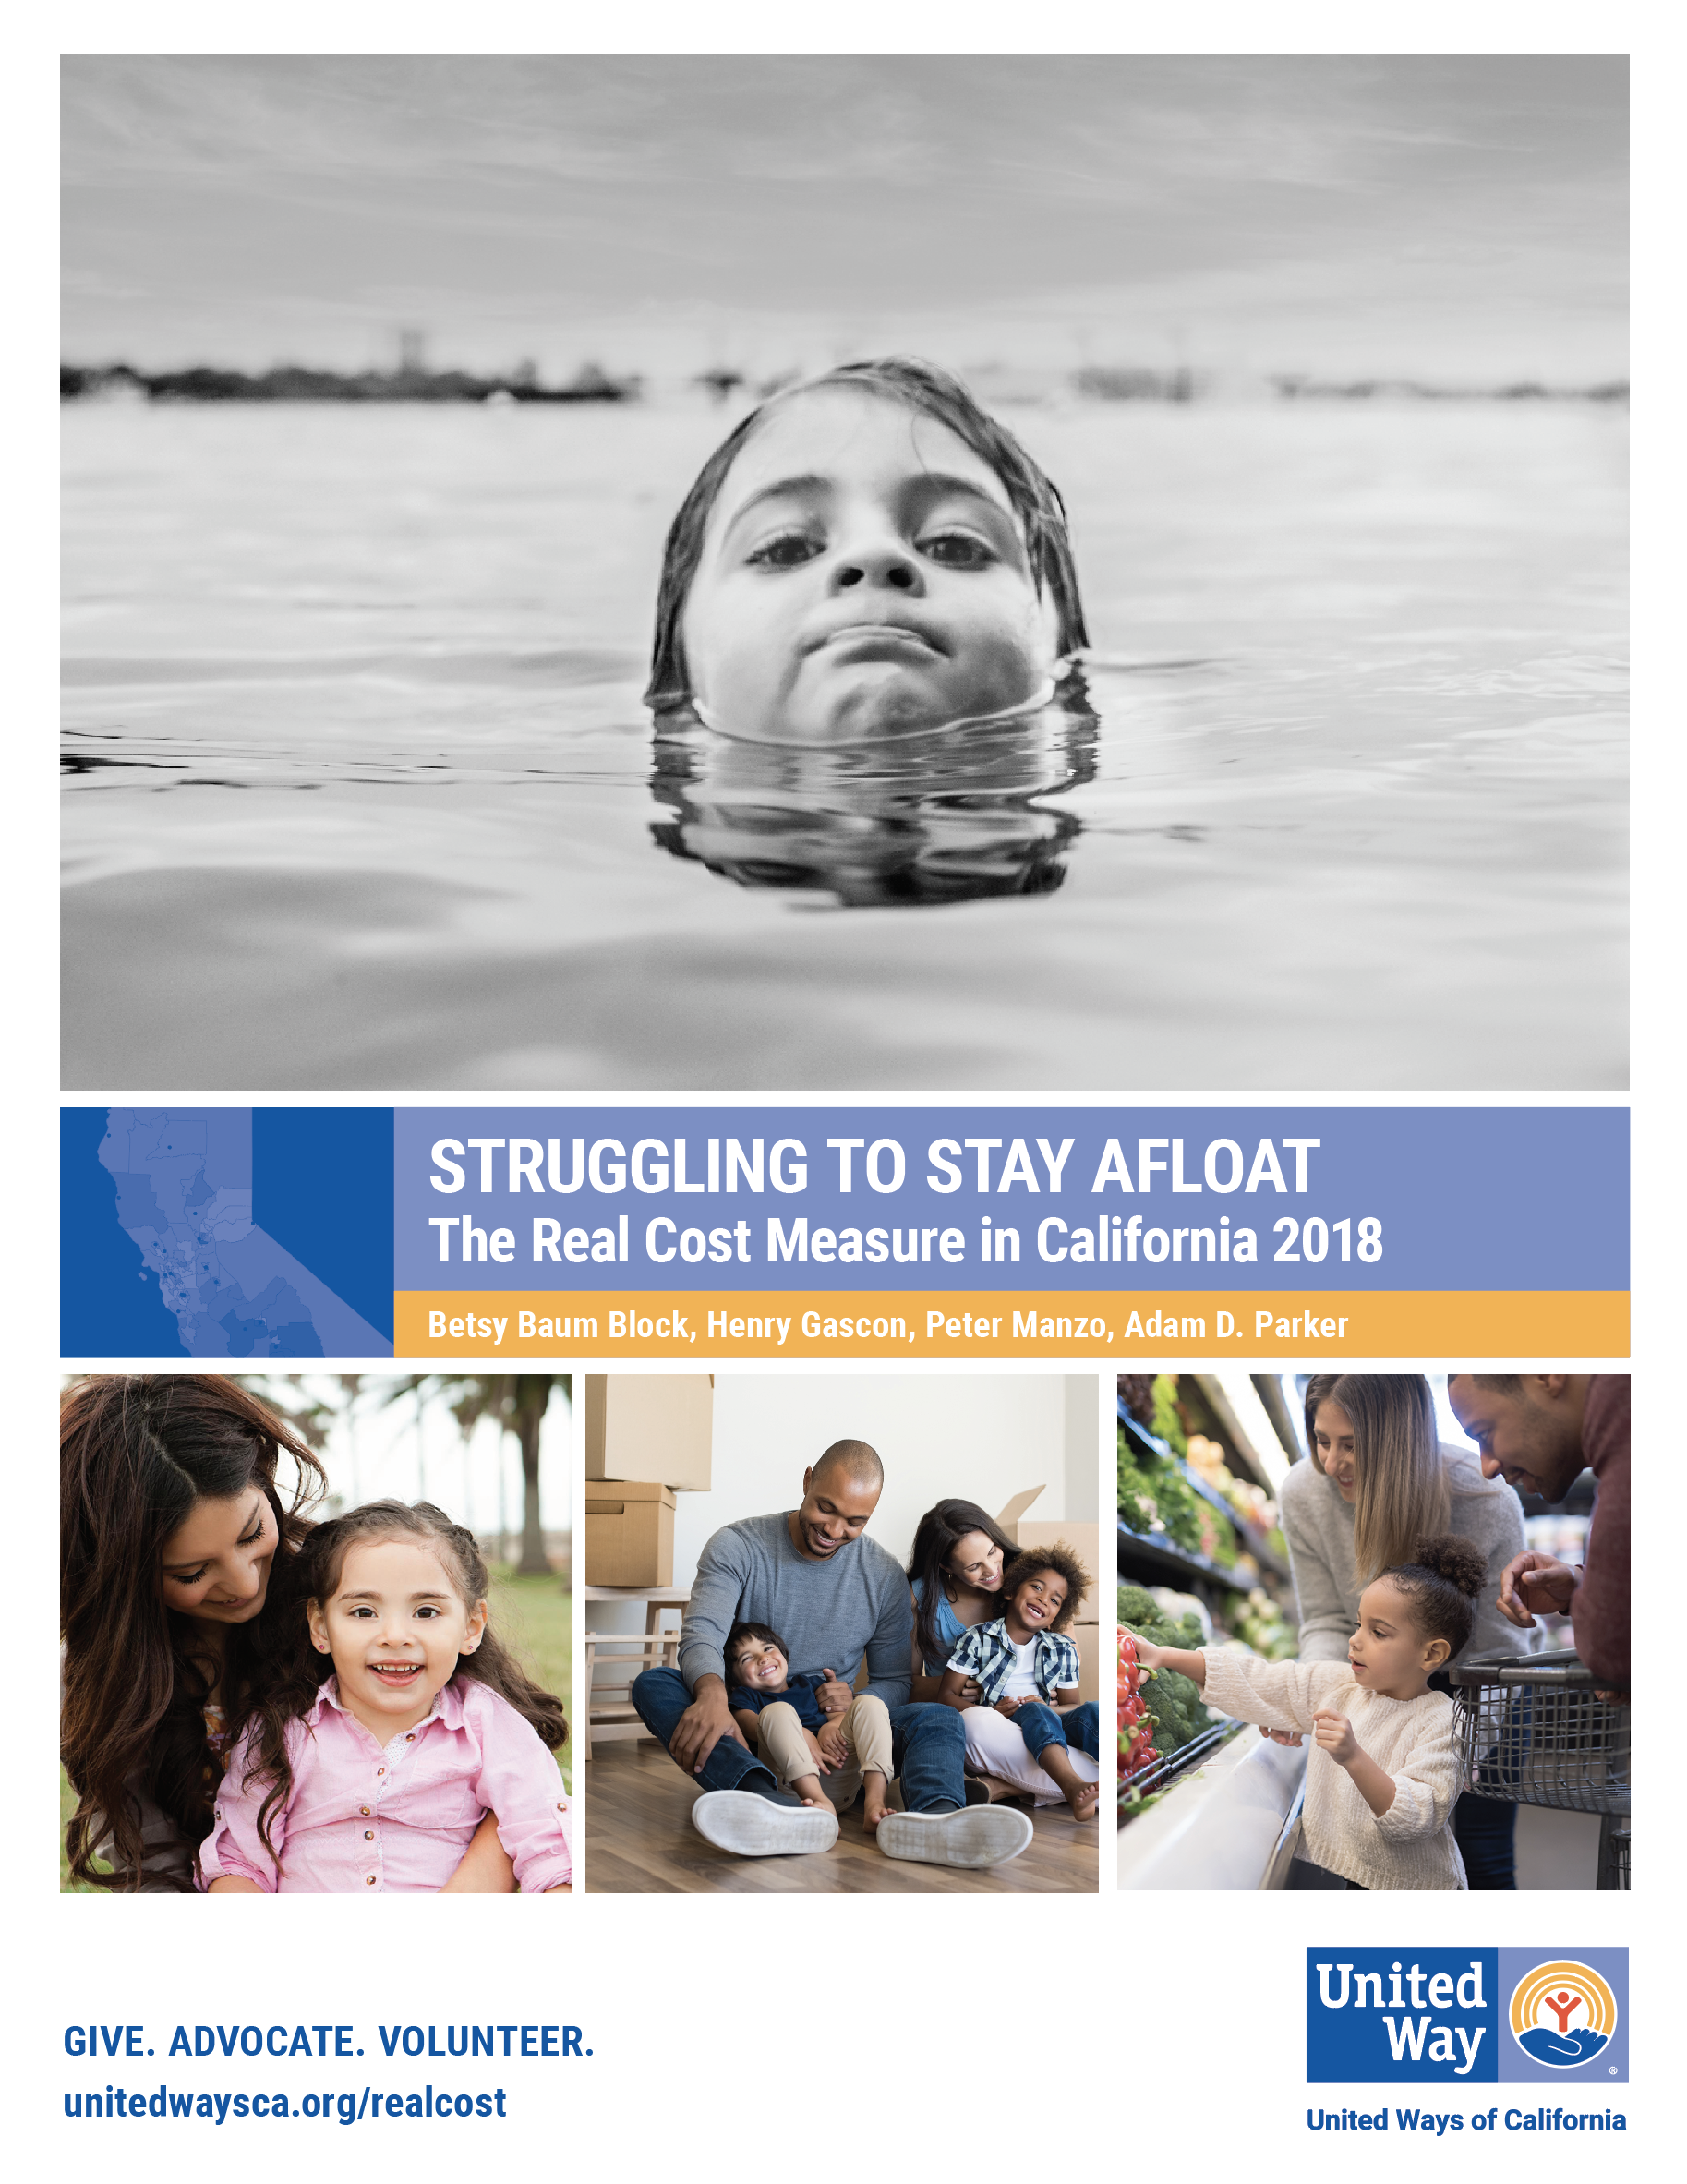 Struggling to Stay Afloat Report Cover